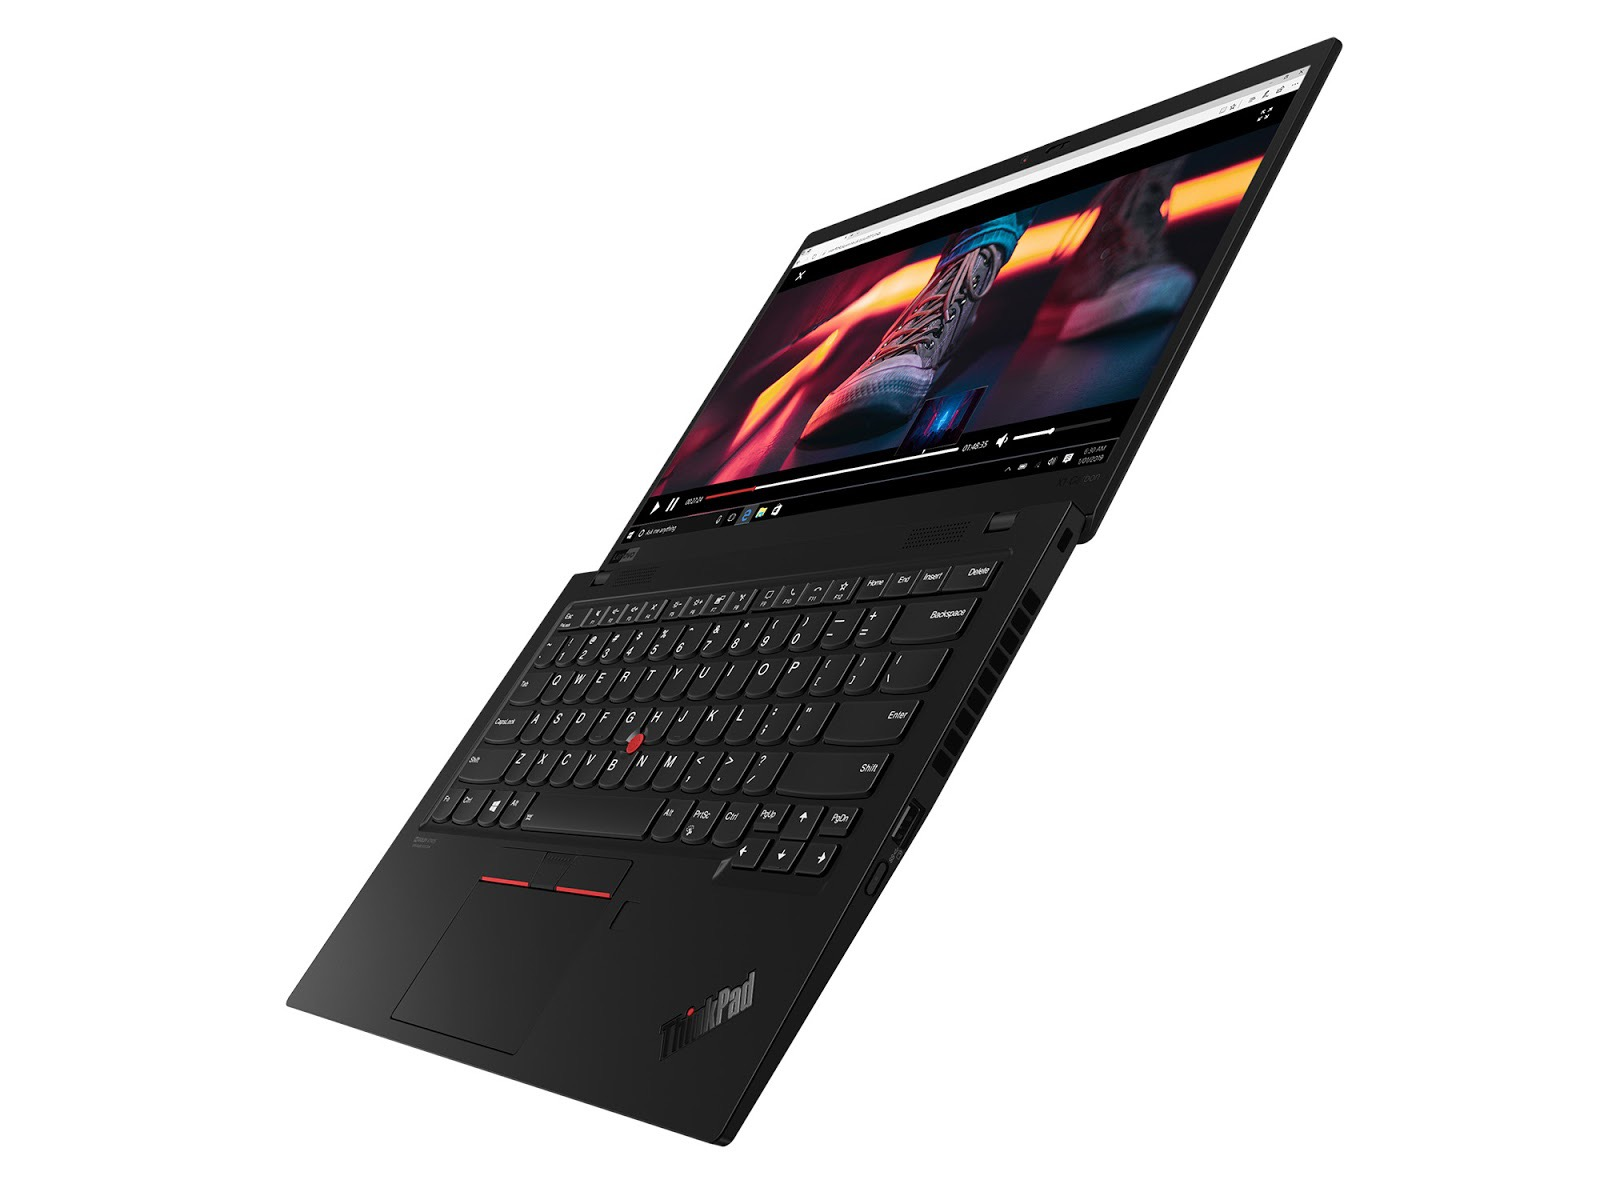 Фото 1. Ноутбук Lenovo ThinkPad X1 Carbon Gen 8 Black (20U90001RT)